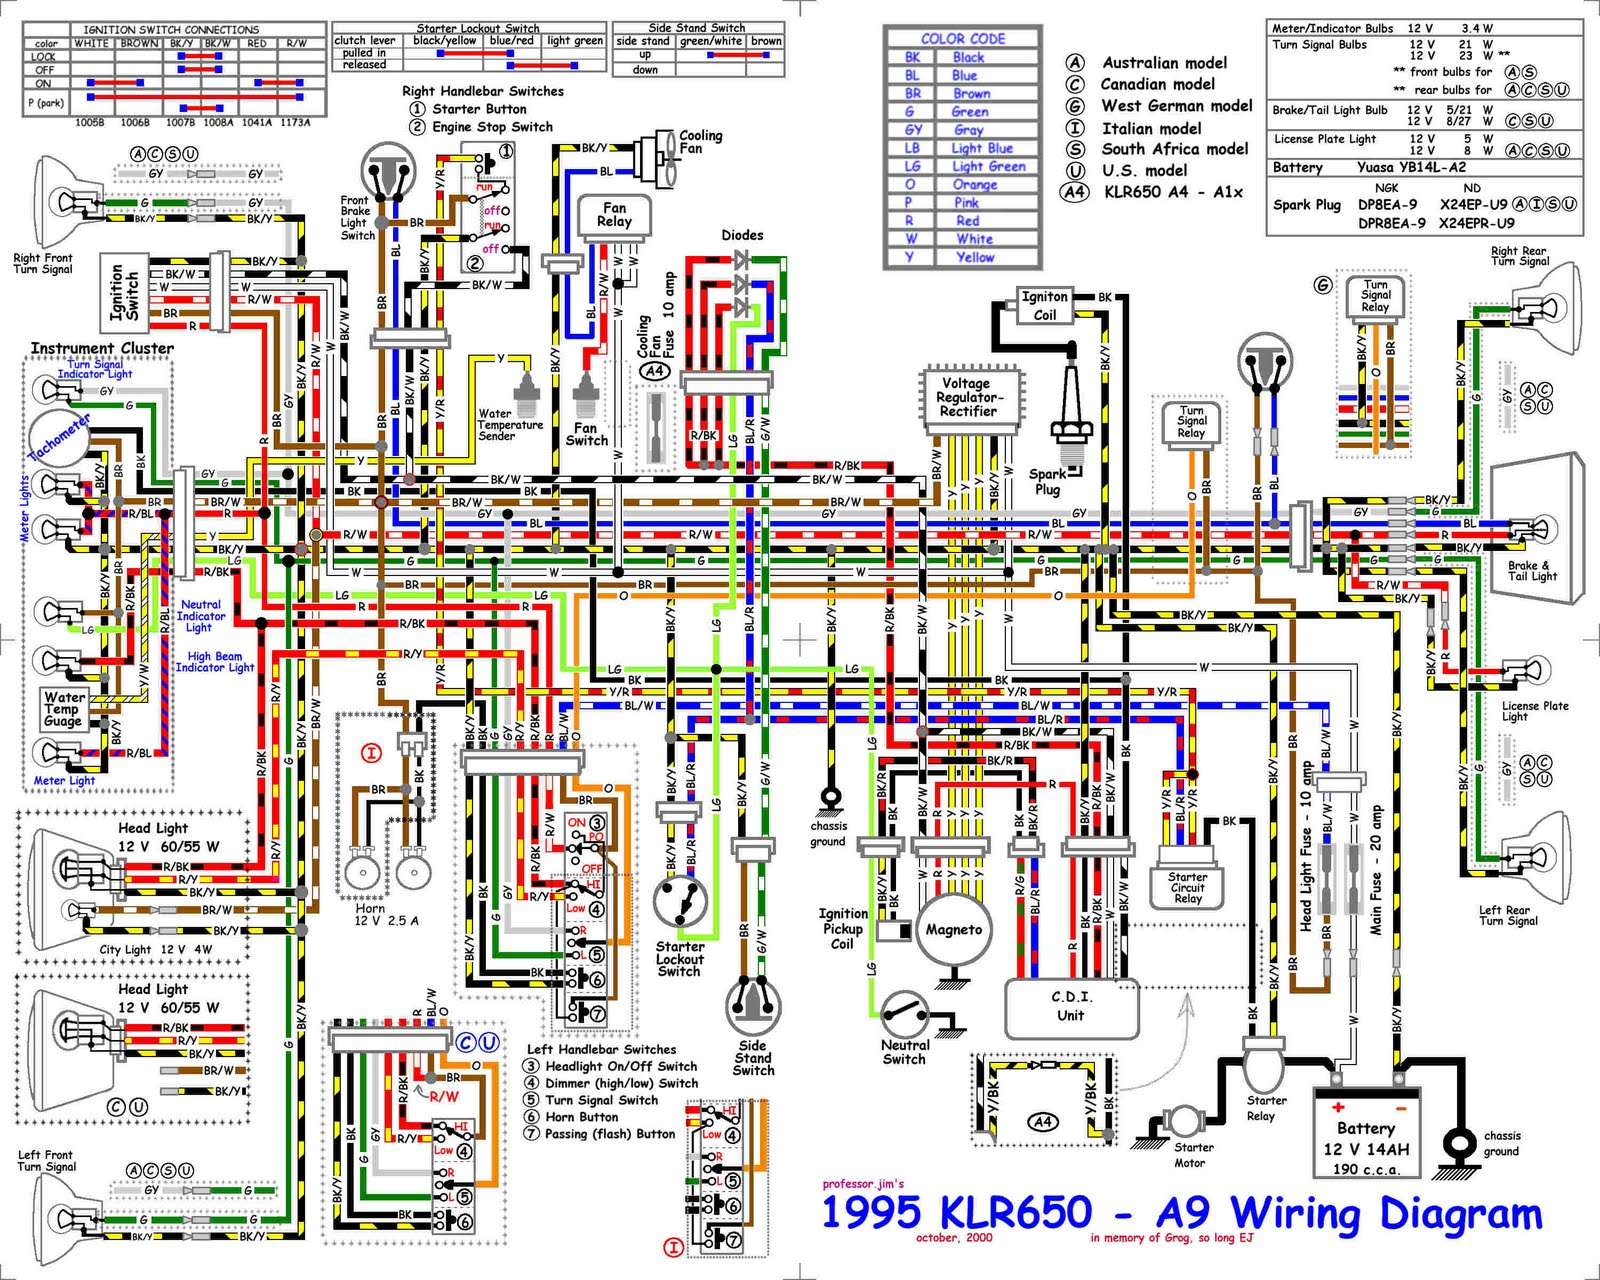 hight resolution of 76 monte carlo wiring diagram simple wiring diagrams 1985 monte carlo wiring diagram 1974 monte carlo wiring diagram